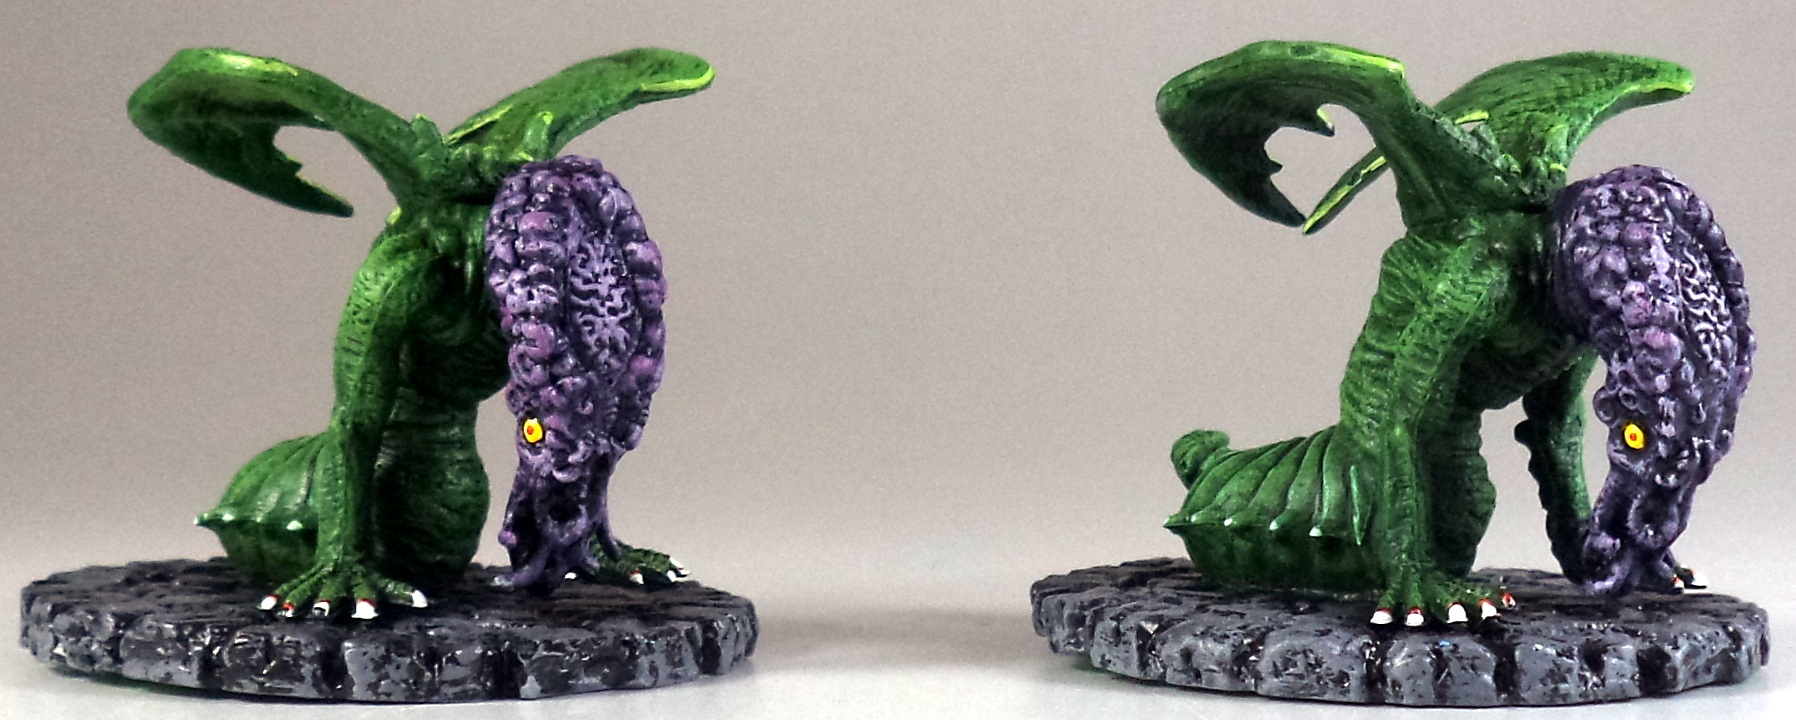 Paintedfigs+Miniature+Painting+Service+DB+Cthulhu+Wars+%2836%29.jpg